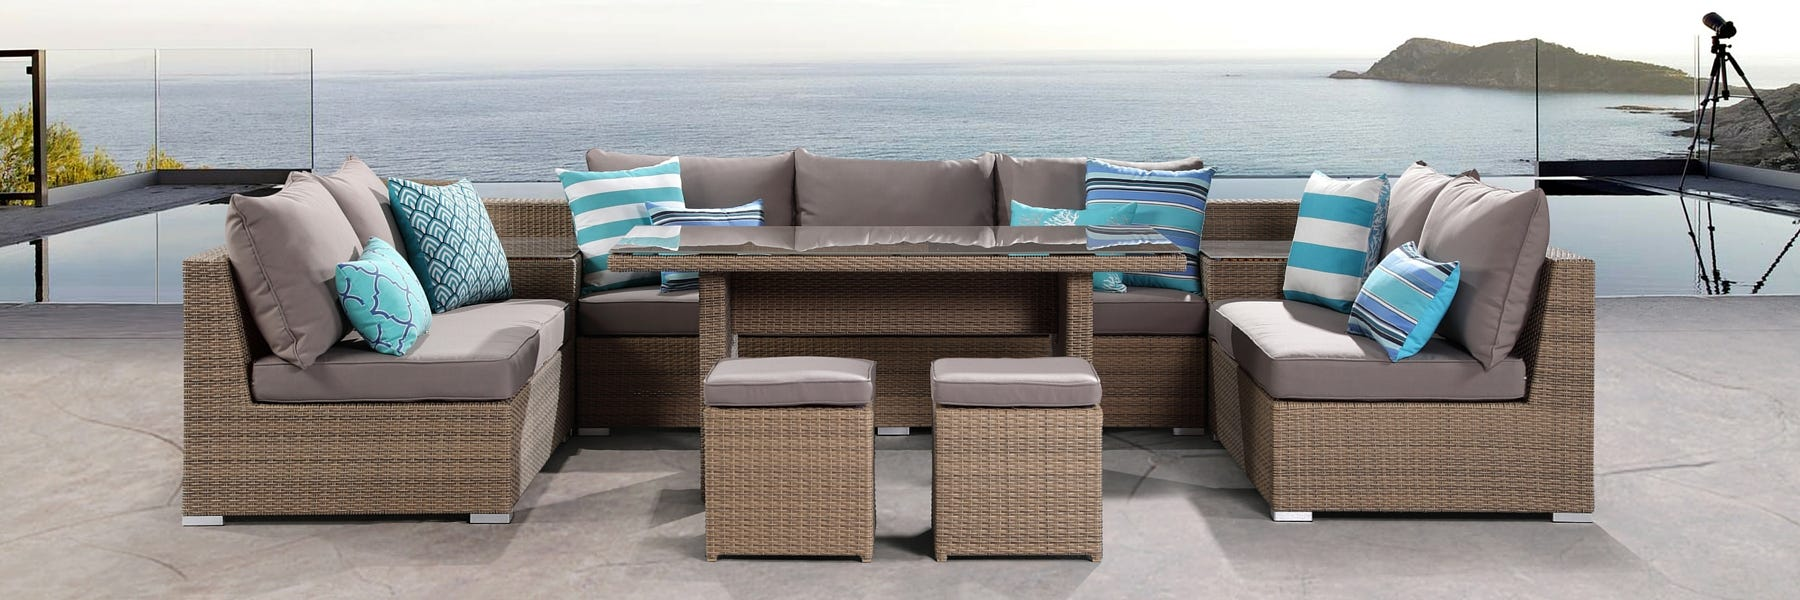 Outdoor furniture evolution - dining out in comfort